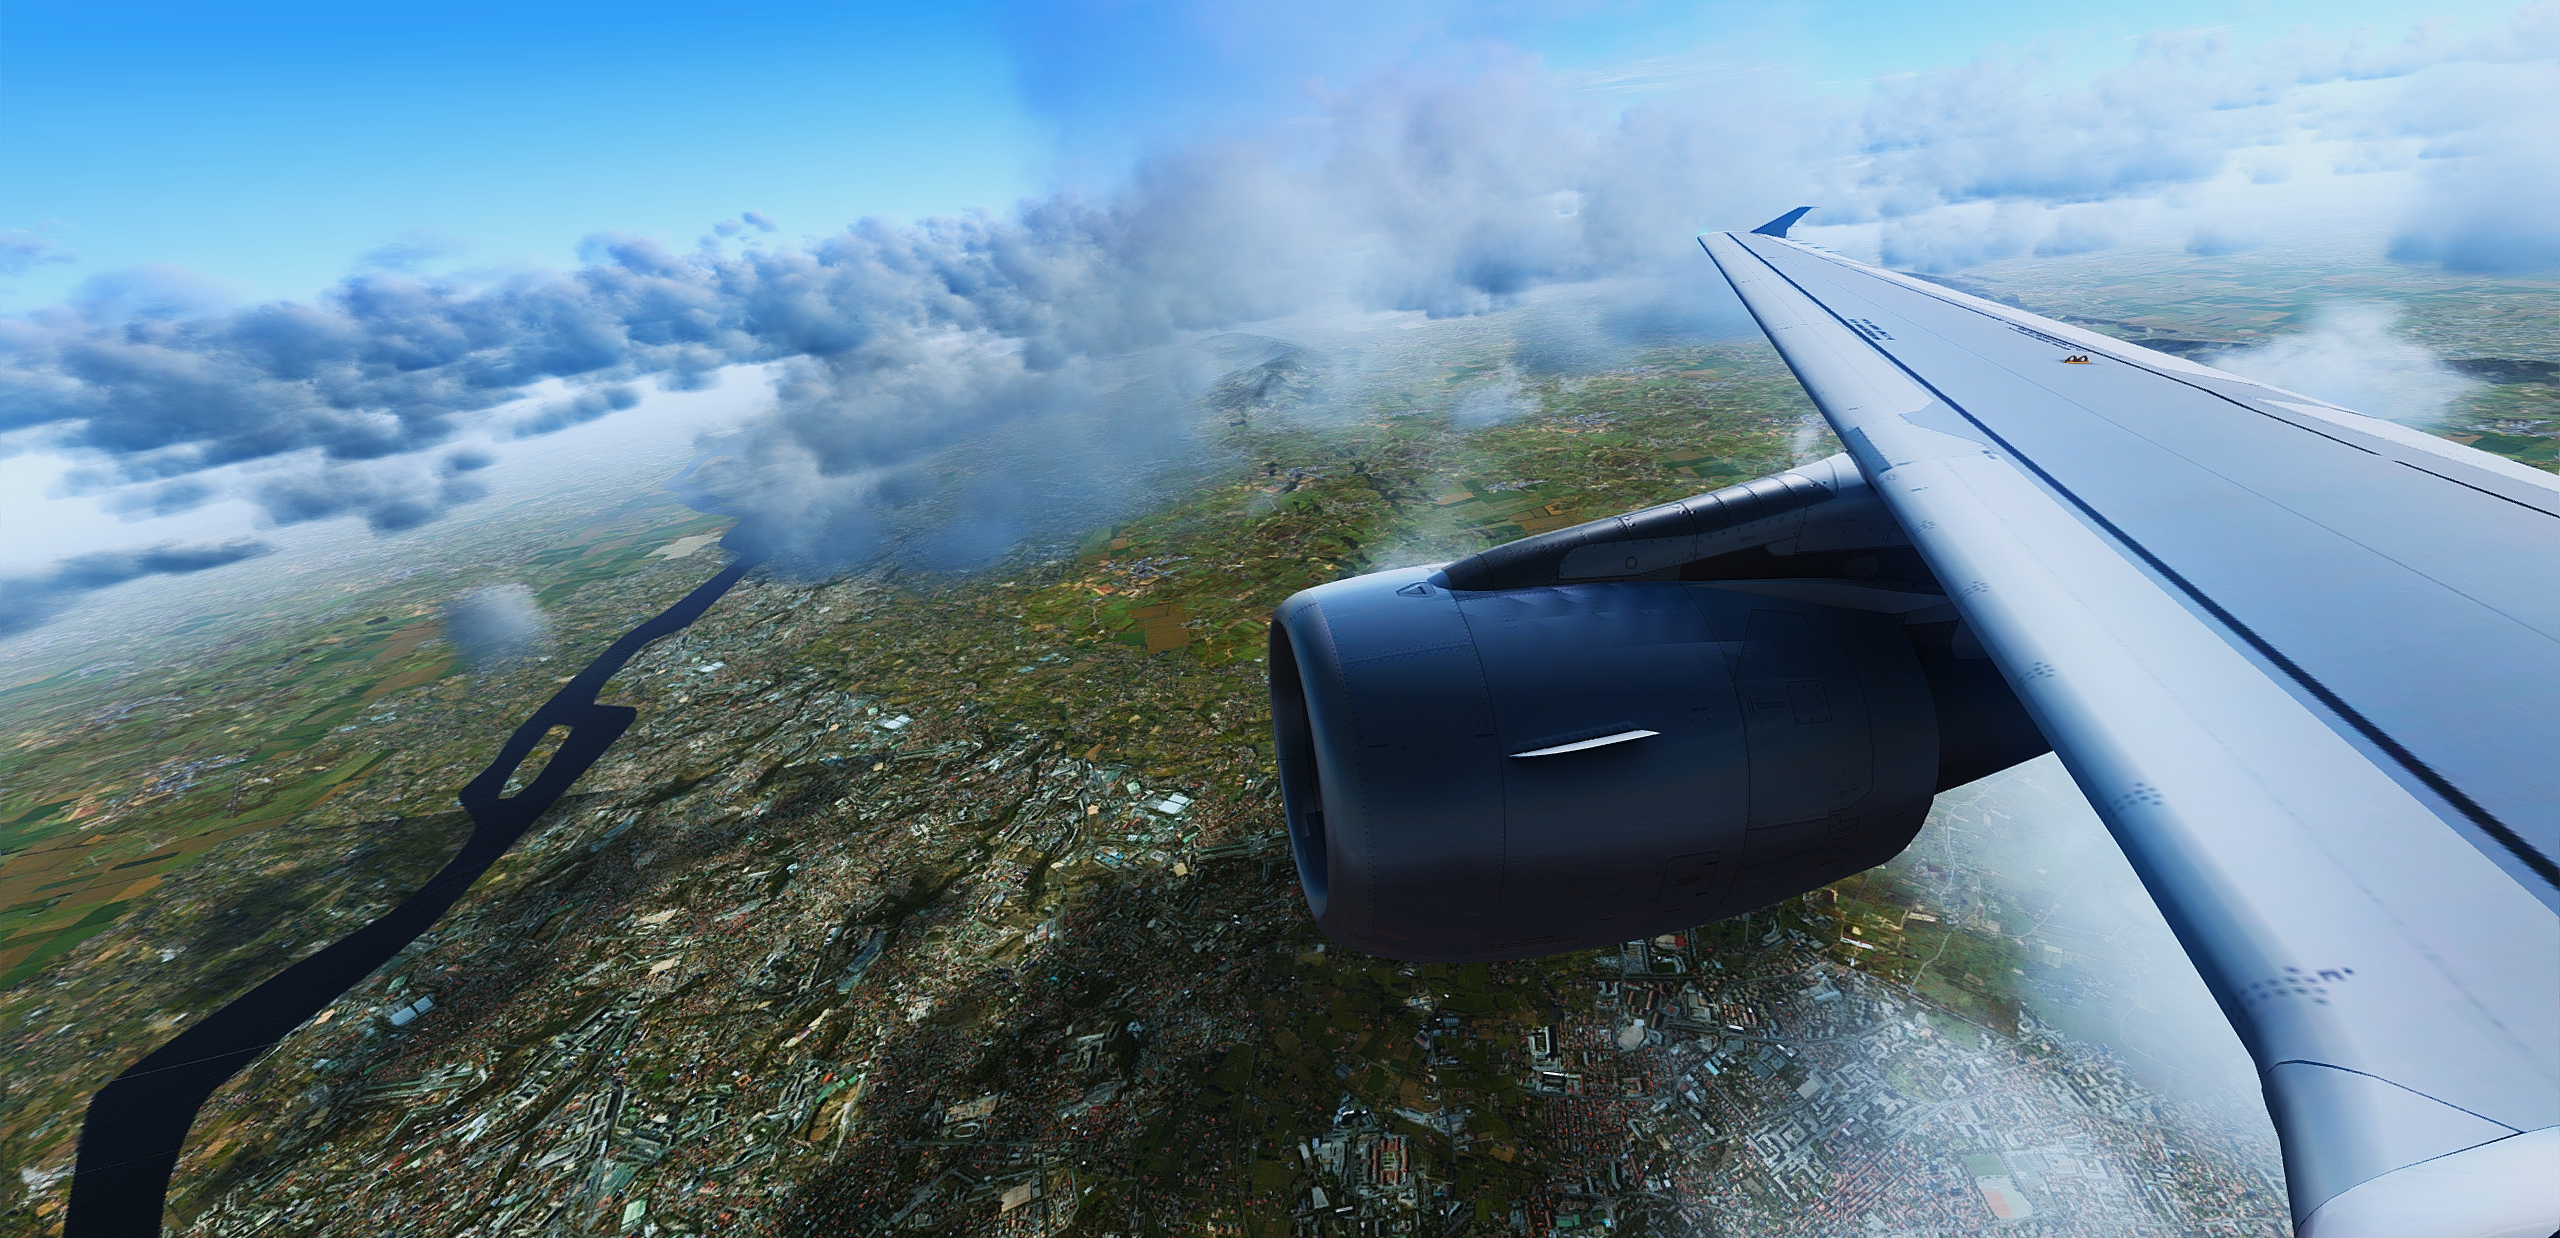 fsx%202015-07-05%2014-03-39-134.png?dl=0